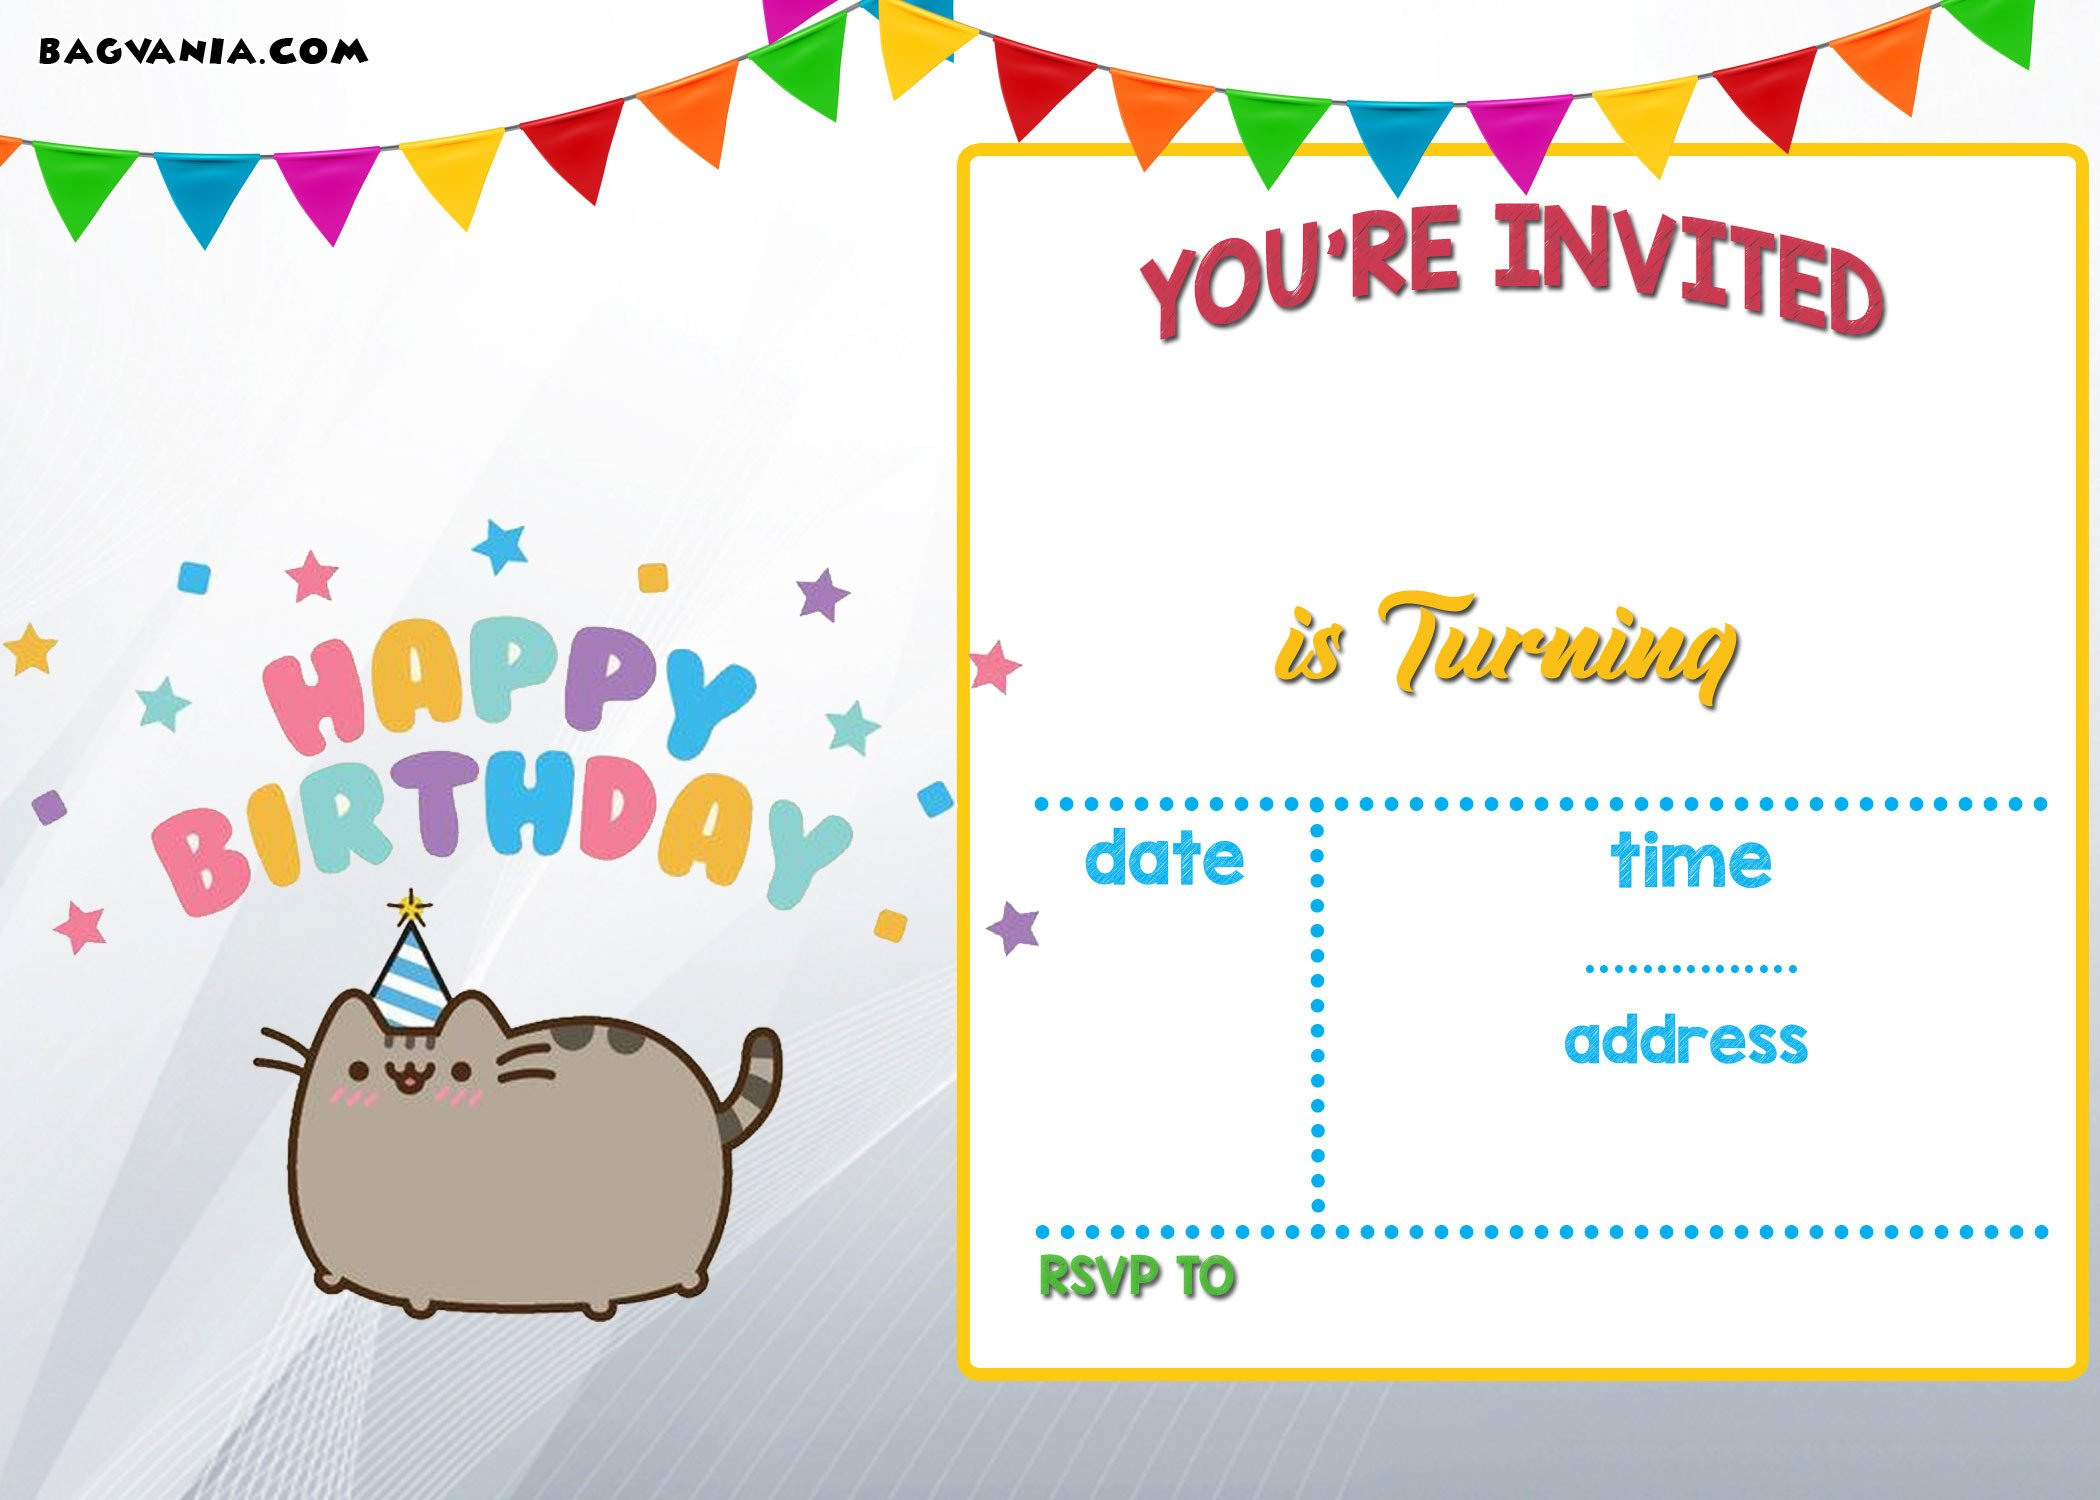 Kids Birthday Invitation Template Free Printable Kids Birthday Invitations – Bagvania Free